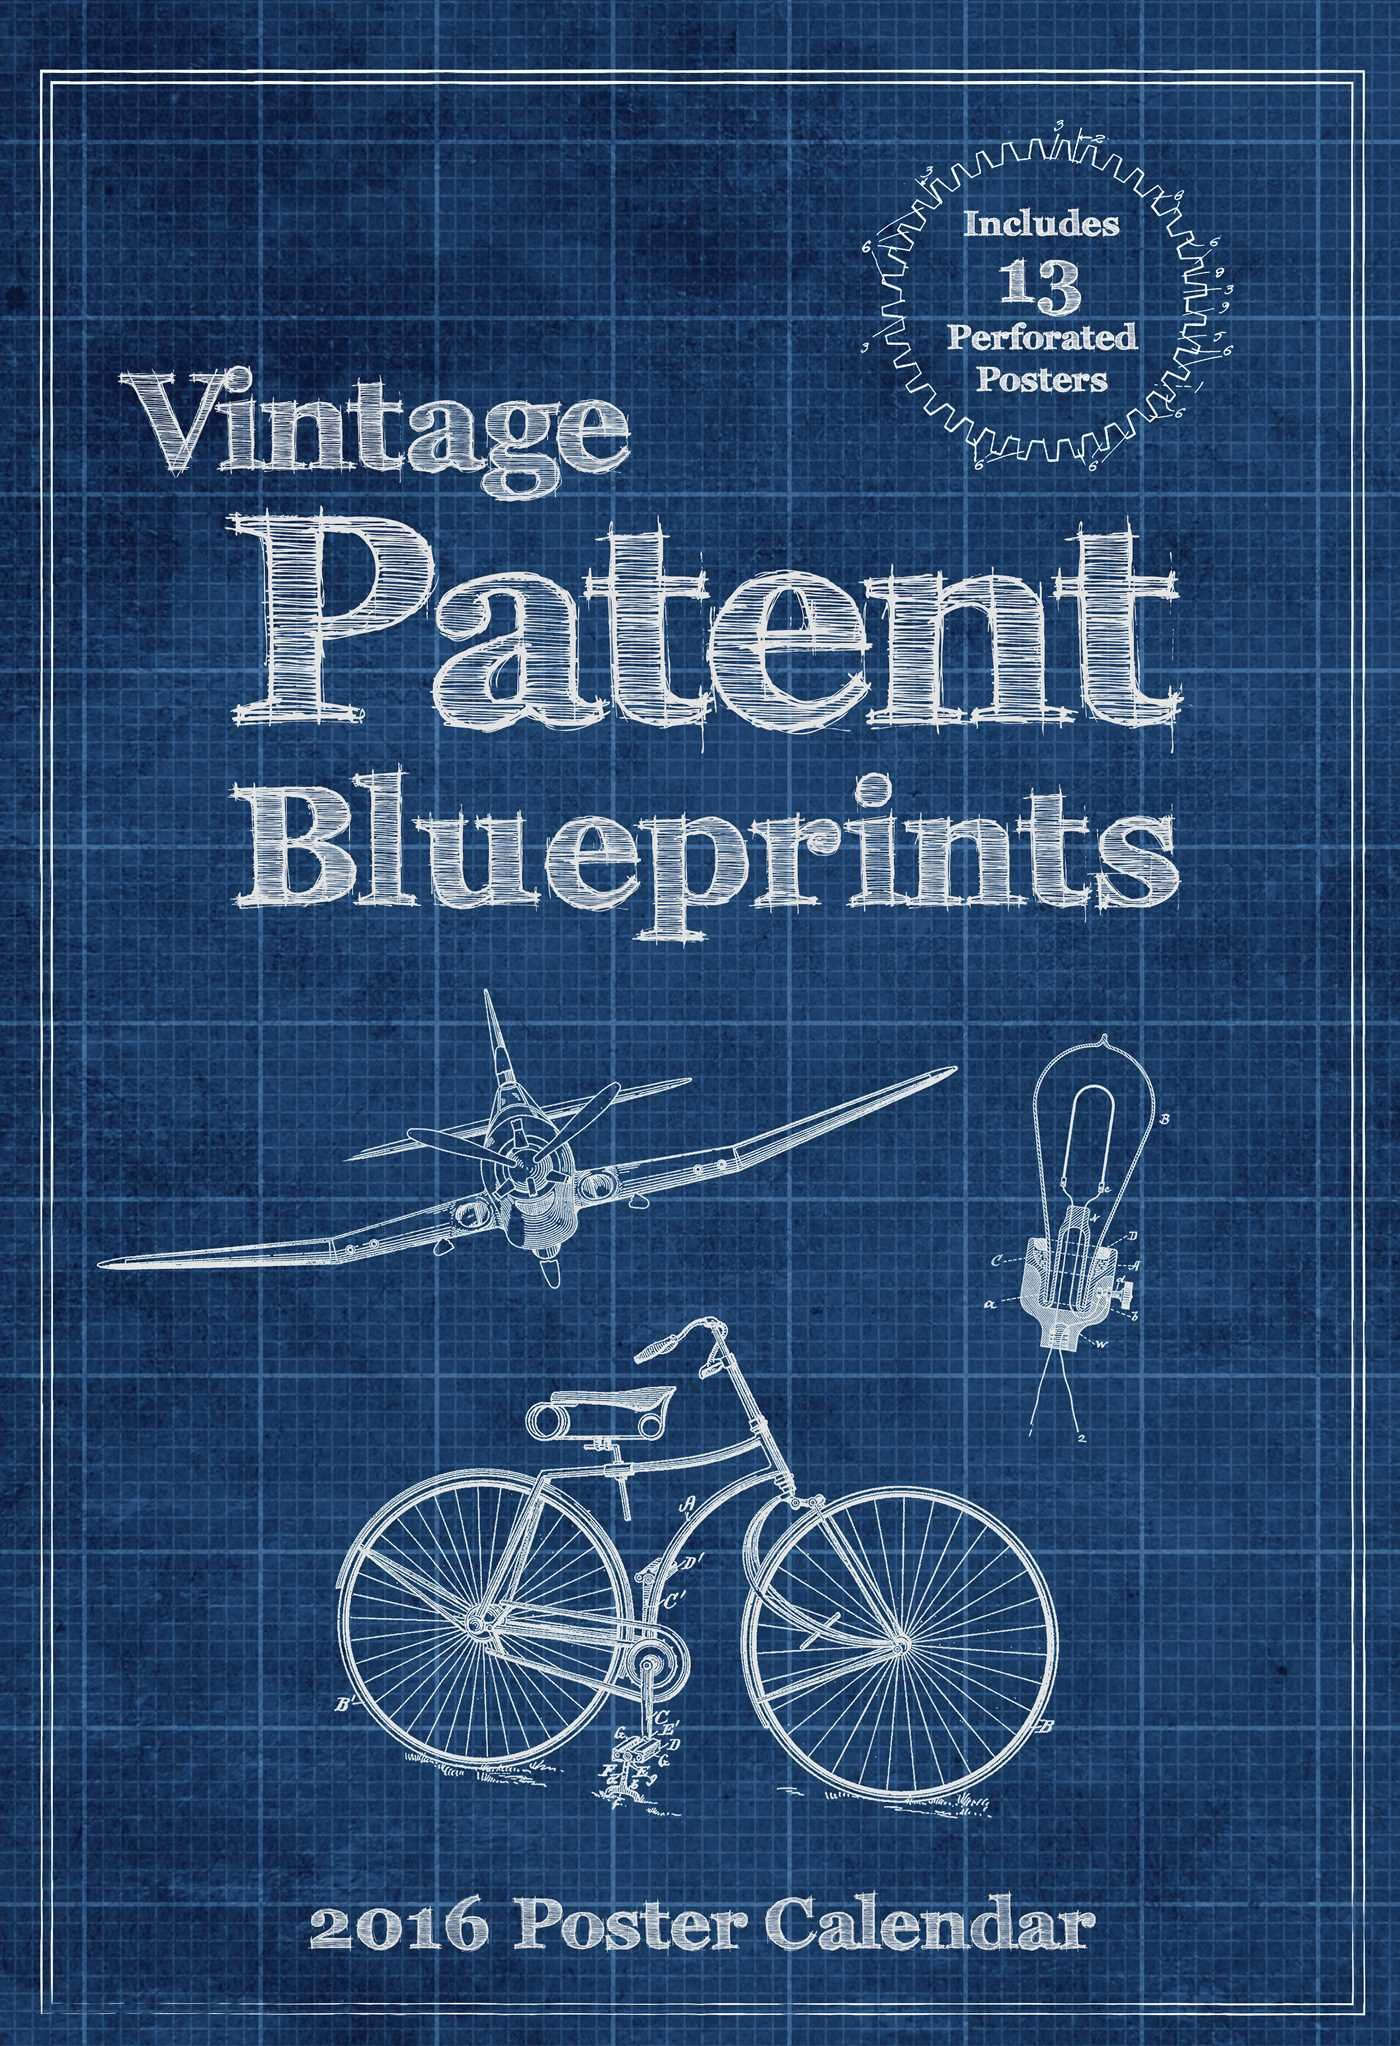 Vintage patent blueprints 2016 poster calendar art remedy llc vintage patent blueprints 2016 poster calendar art remedy llc 0050837343412 amazon books malvernweather